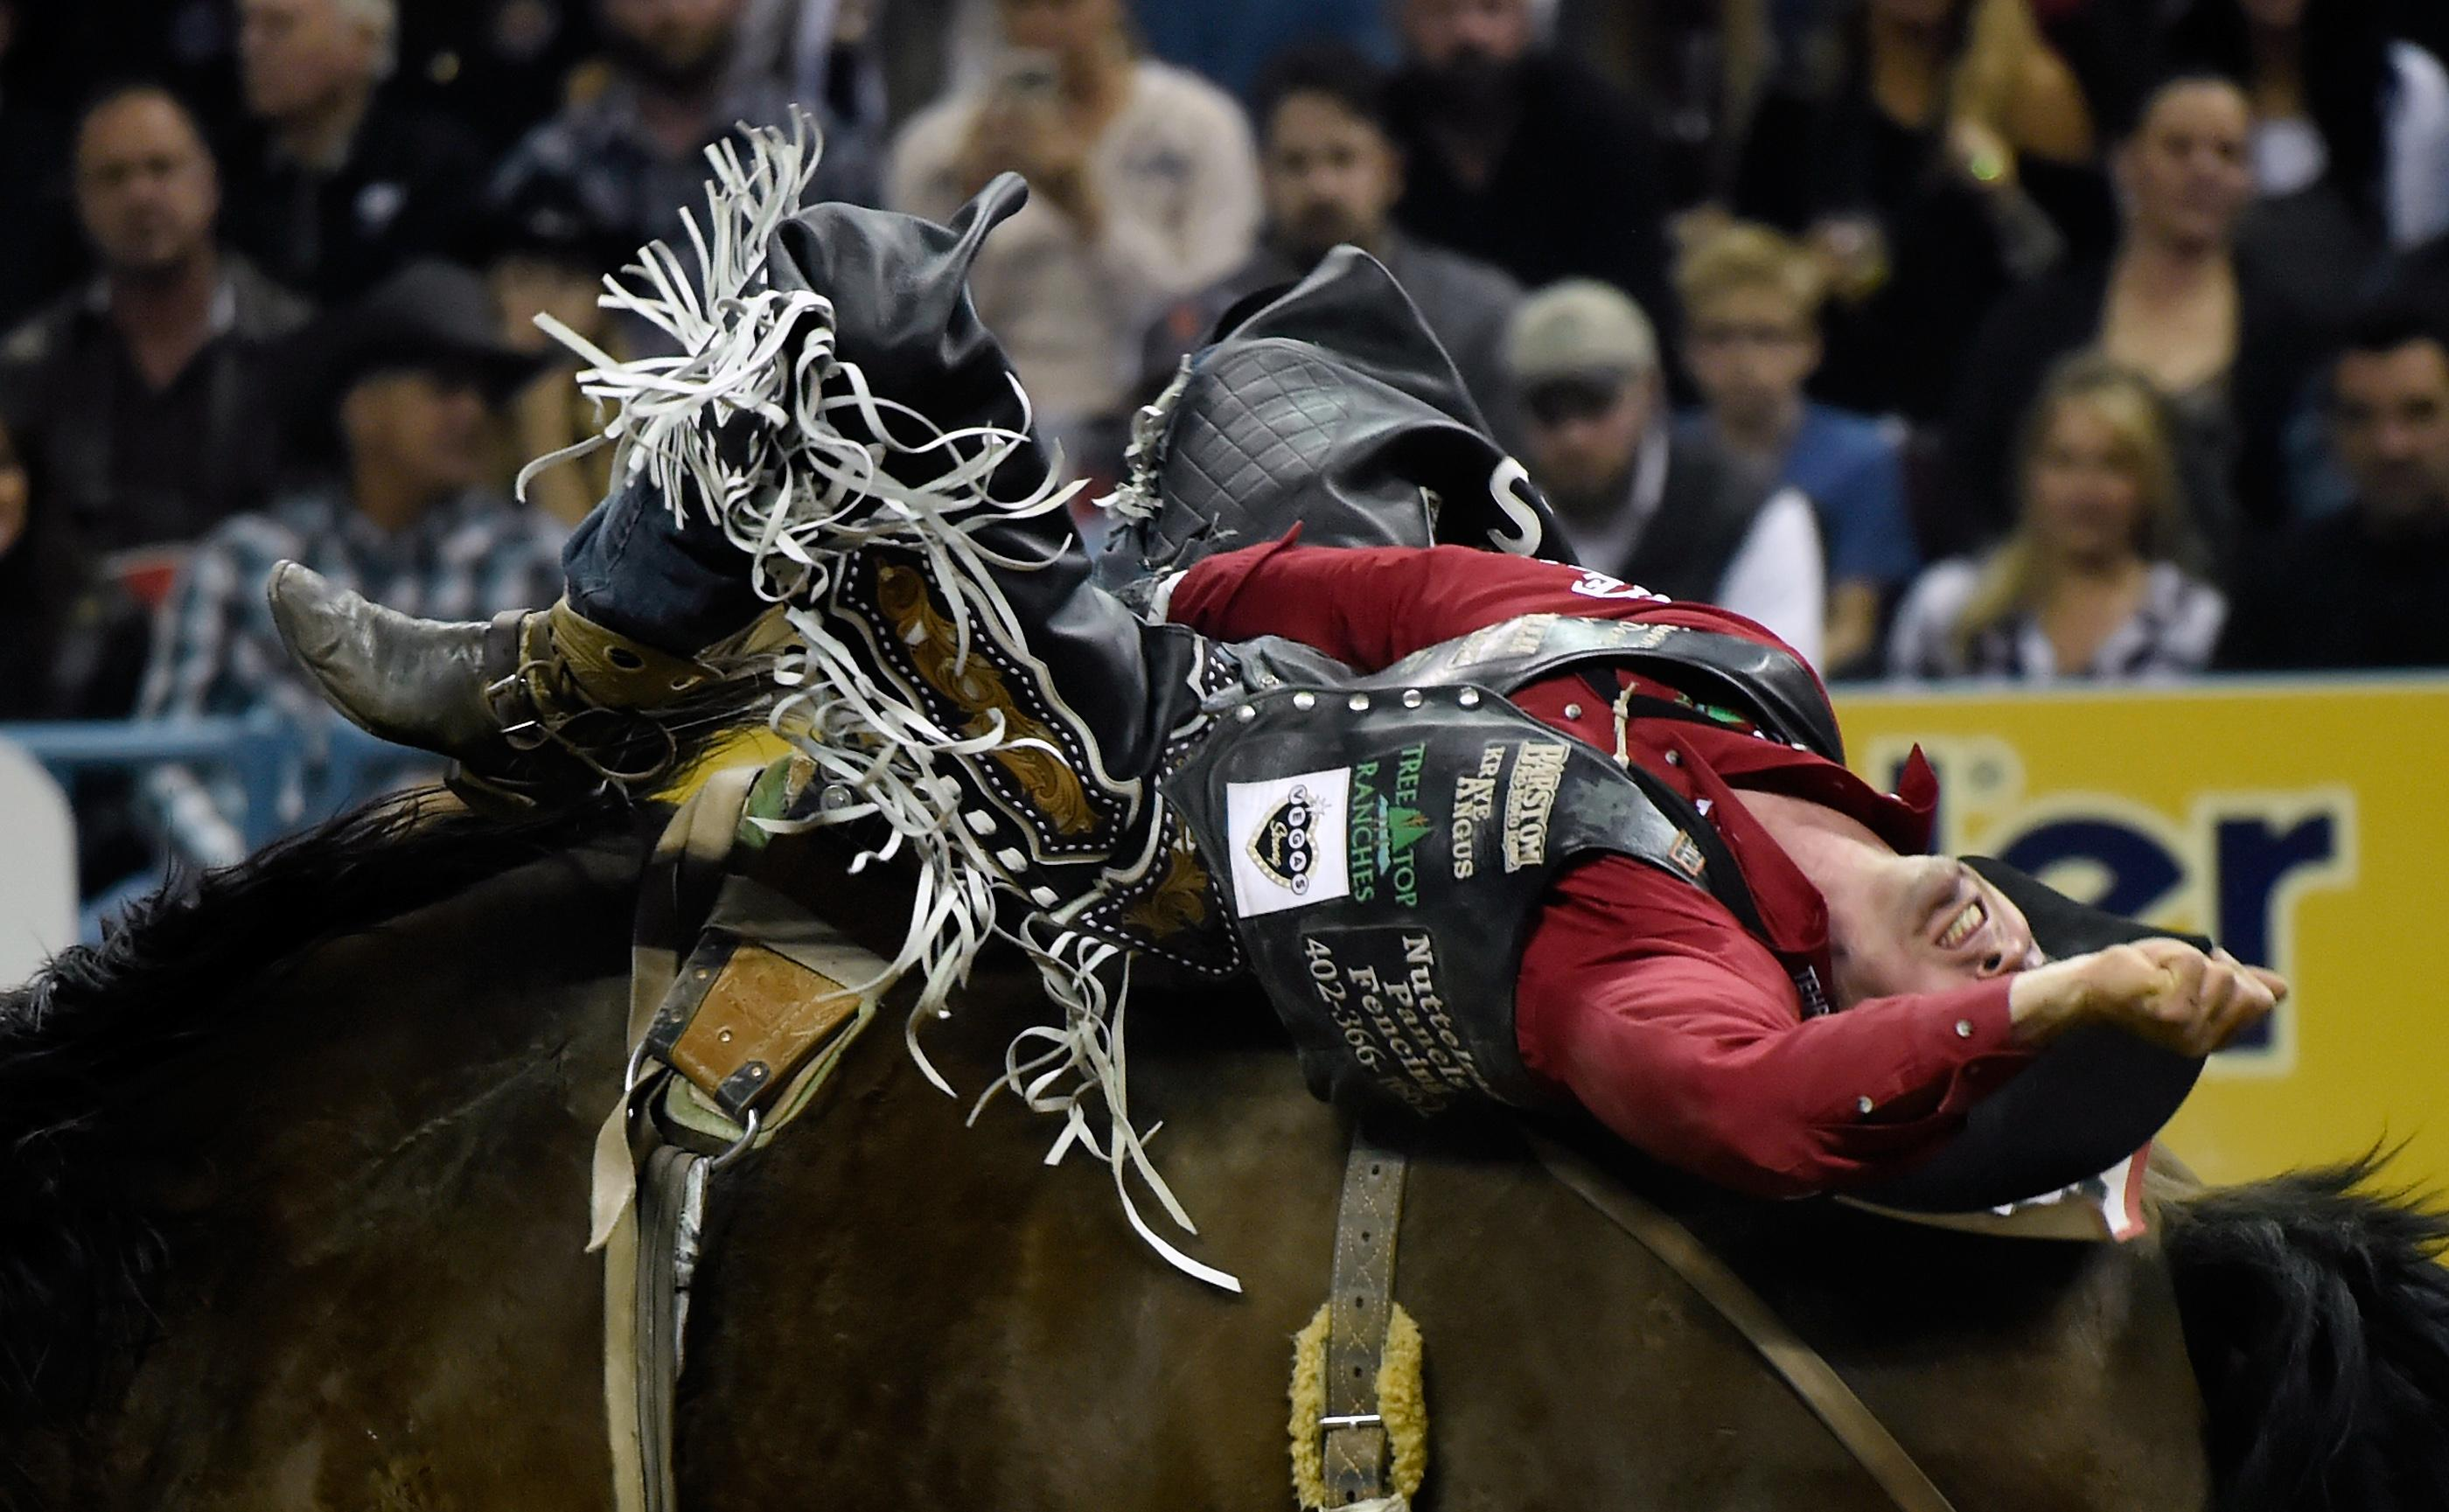 Steven Dent from Mullen, Nebraska, competes in bareback riding during the seventh go-round of the National Finals Rodeo Wednesday, Dec. 13, 2017, in Las Vegas. CREDIT: David Becker/Las Vegas News Bureau